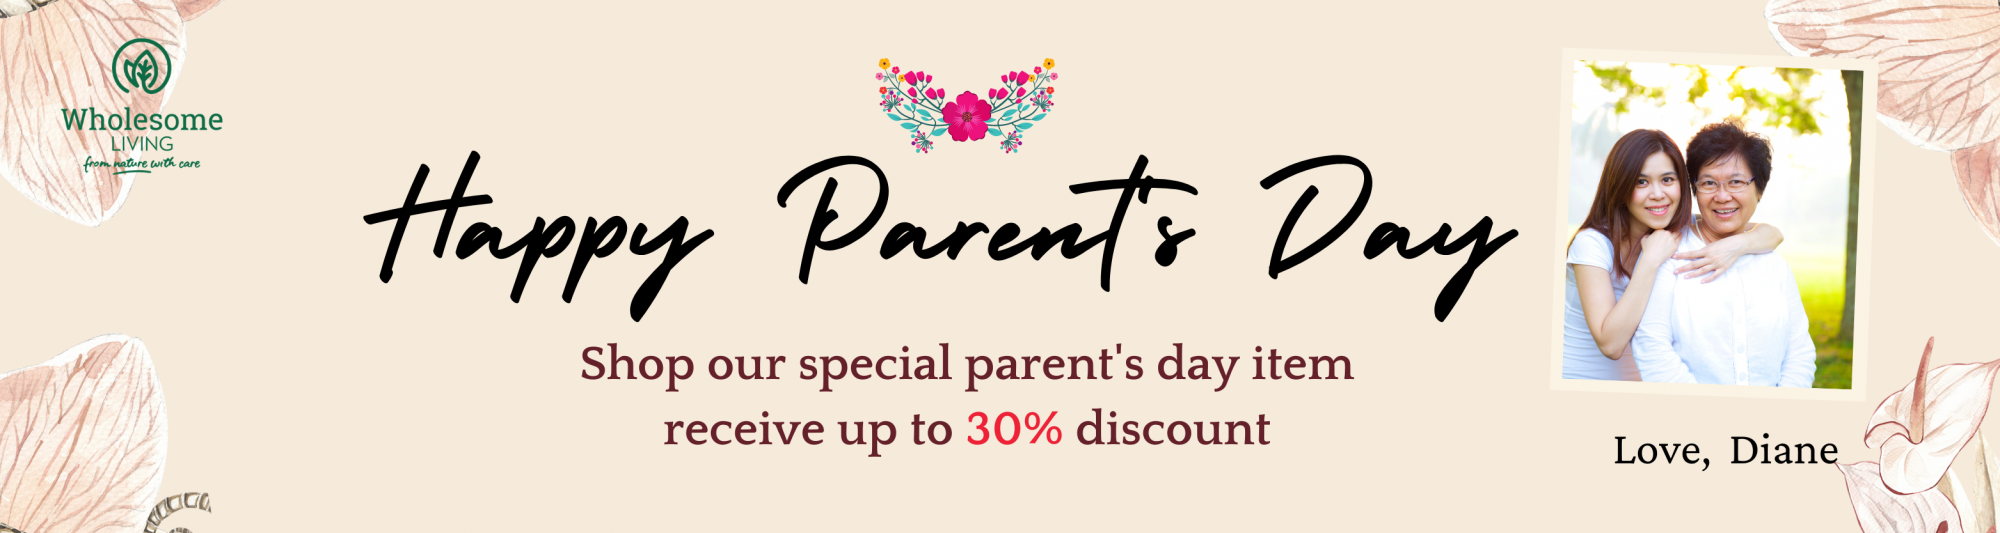 Wholesome Living Parent's Day Special